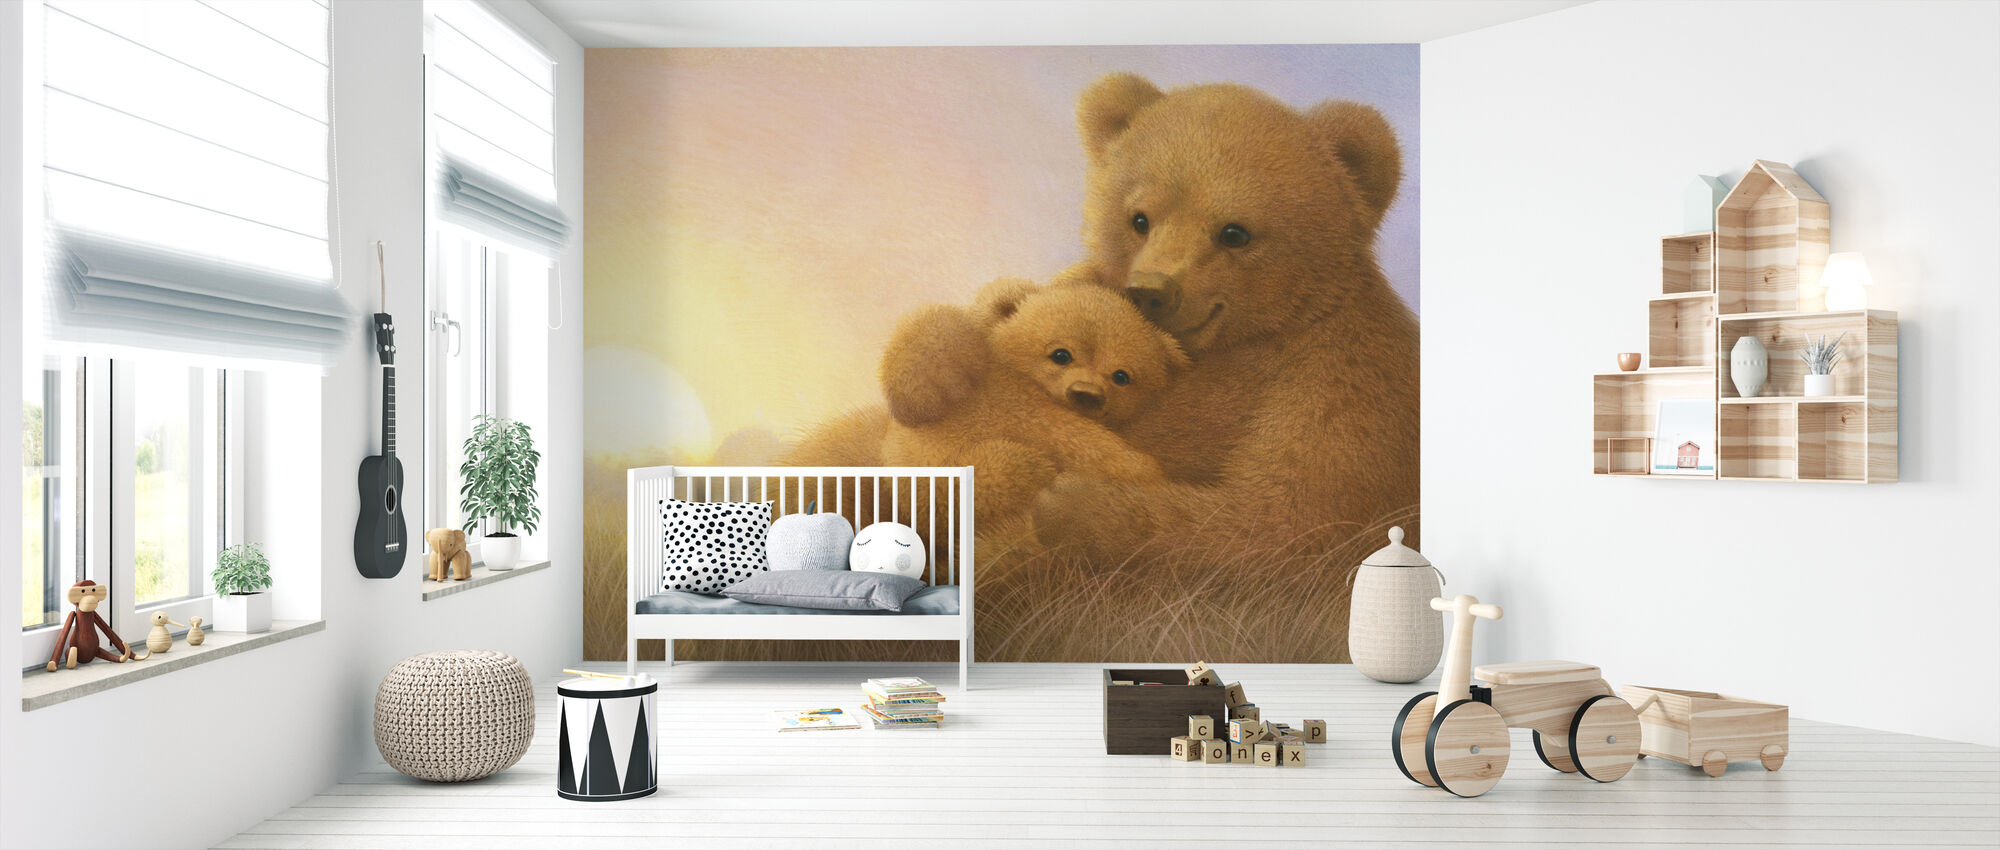 Bear Cub - Wallpaper - Nursery